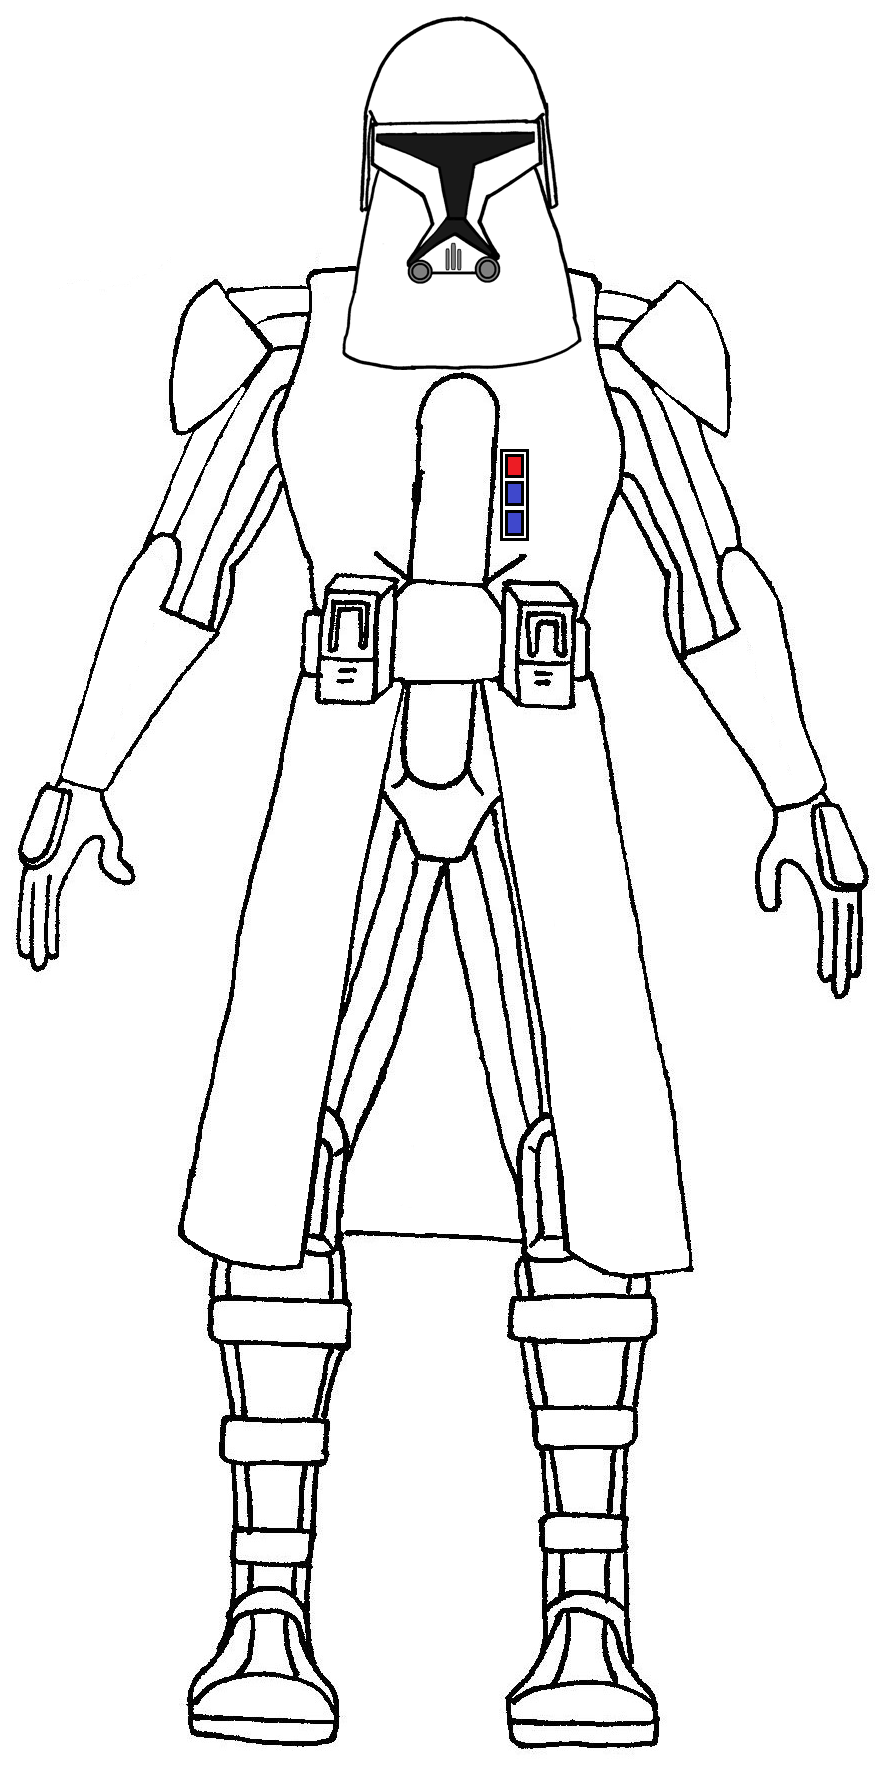 clone trooper colouring pages coloring and drawing clone trooper captain rex star wars clone trooper colouring pages